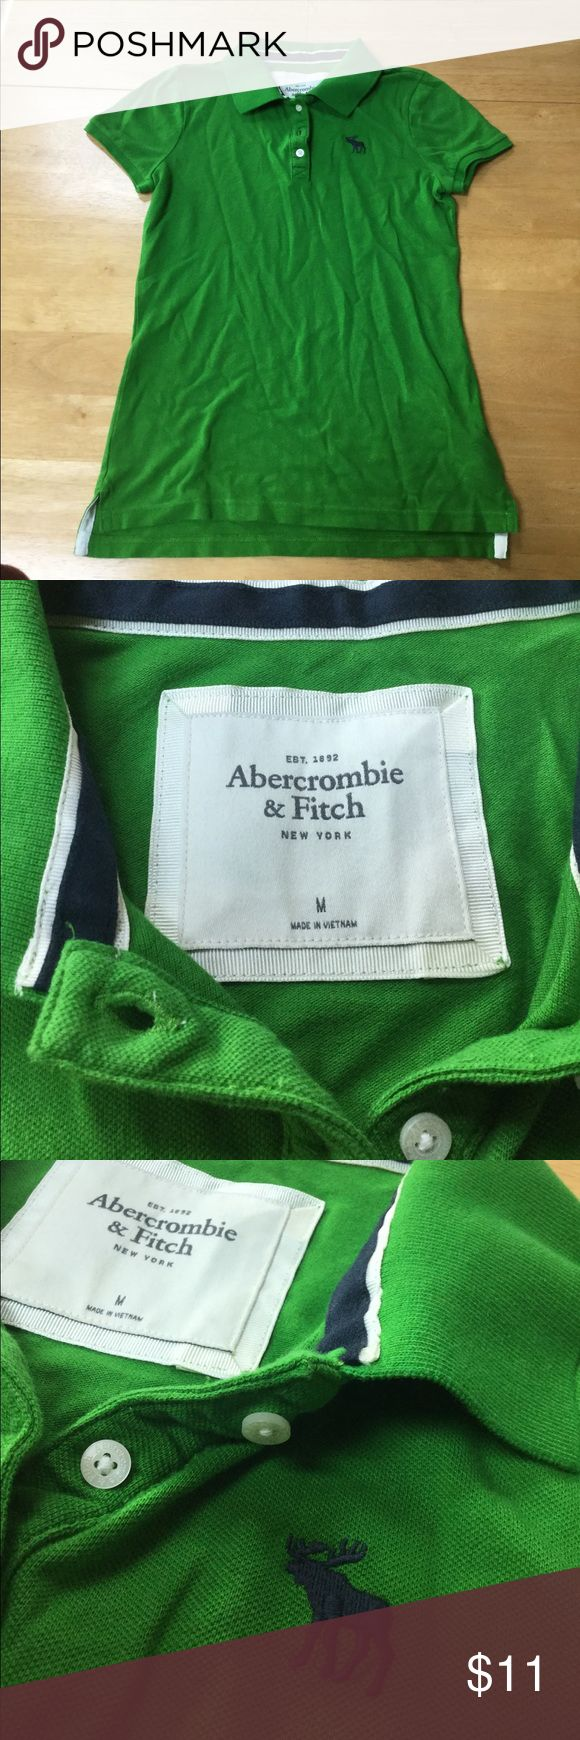 Abercrombie & Fitch, Polo Shirt Description: green polo shirt w/ navy A&F logo, lightly used, 96% cotton, 4% elastane Abercrombie & Fitch Tops Blouses